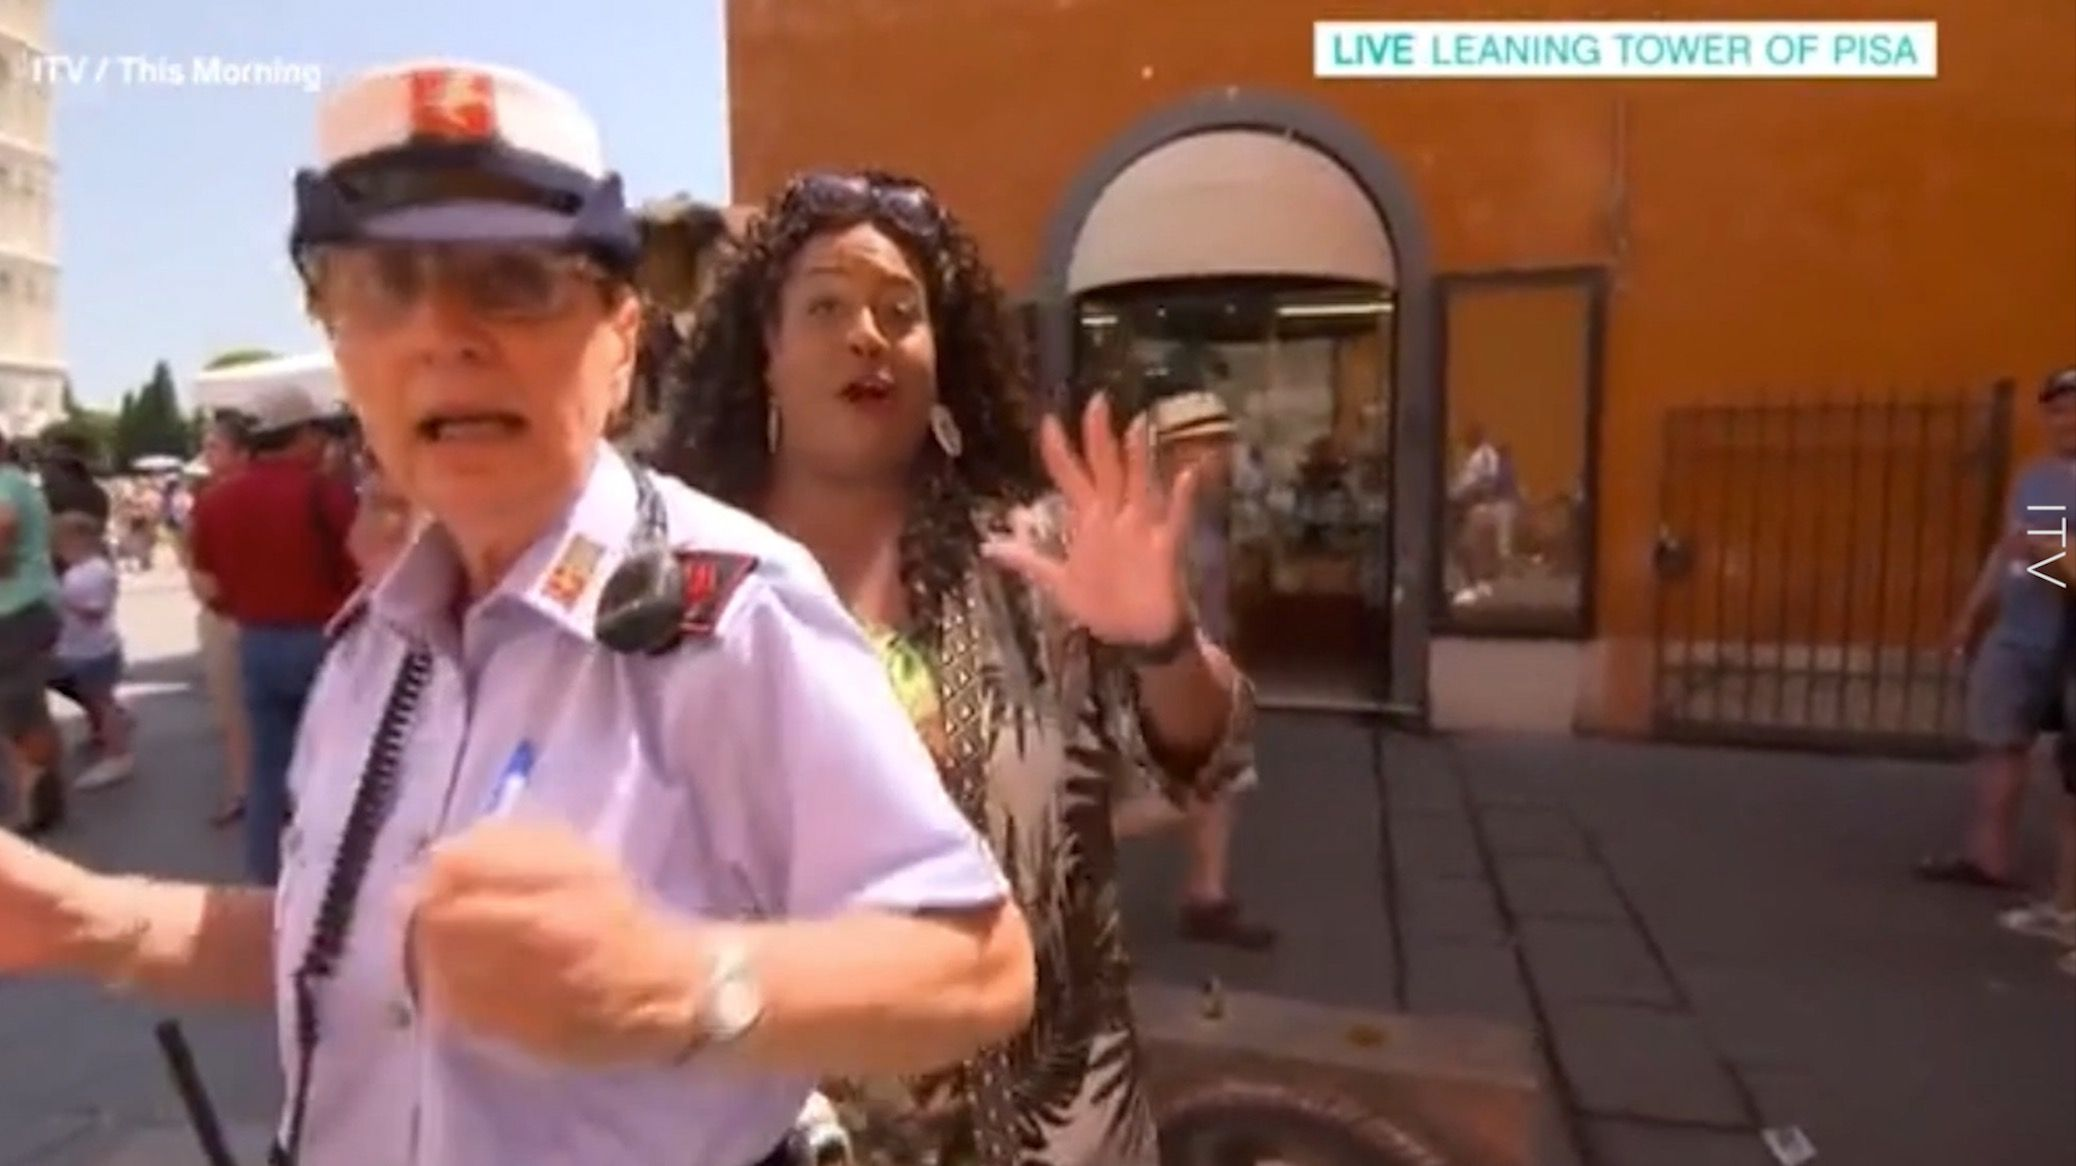 This Morning's Alison Hammond forced to run from Italian police during live segment mistake